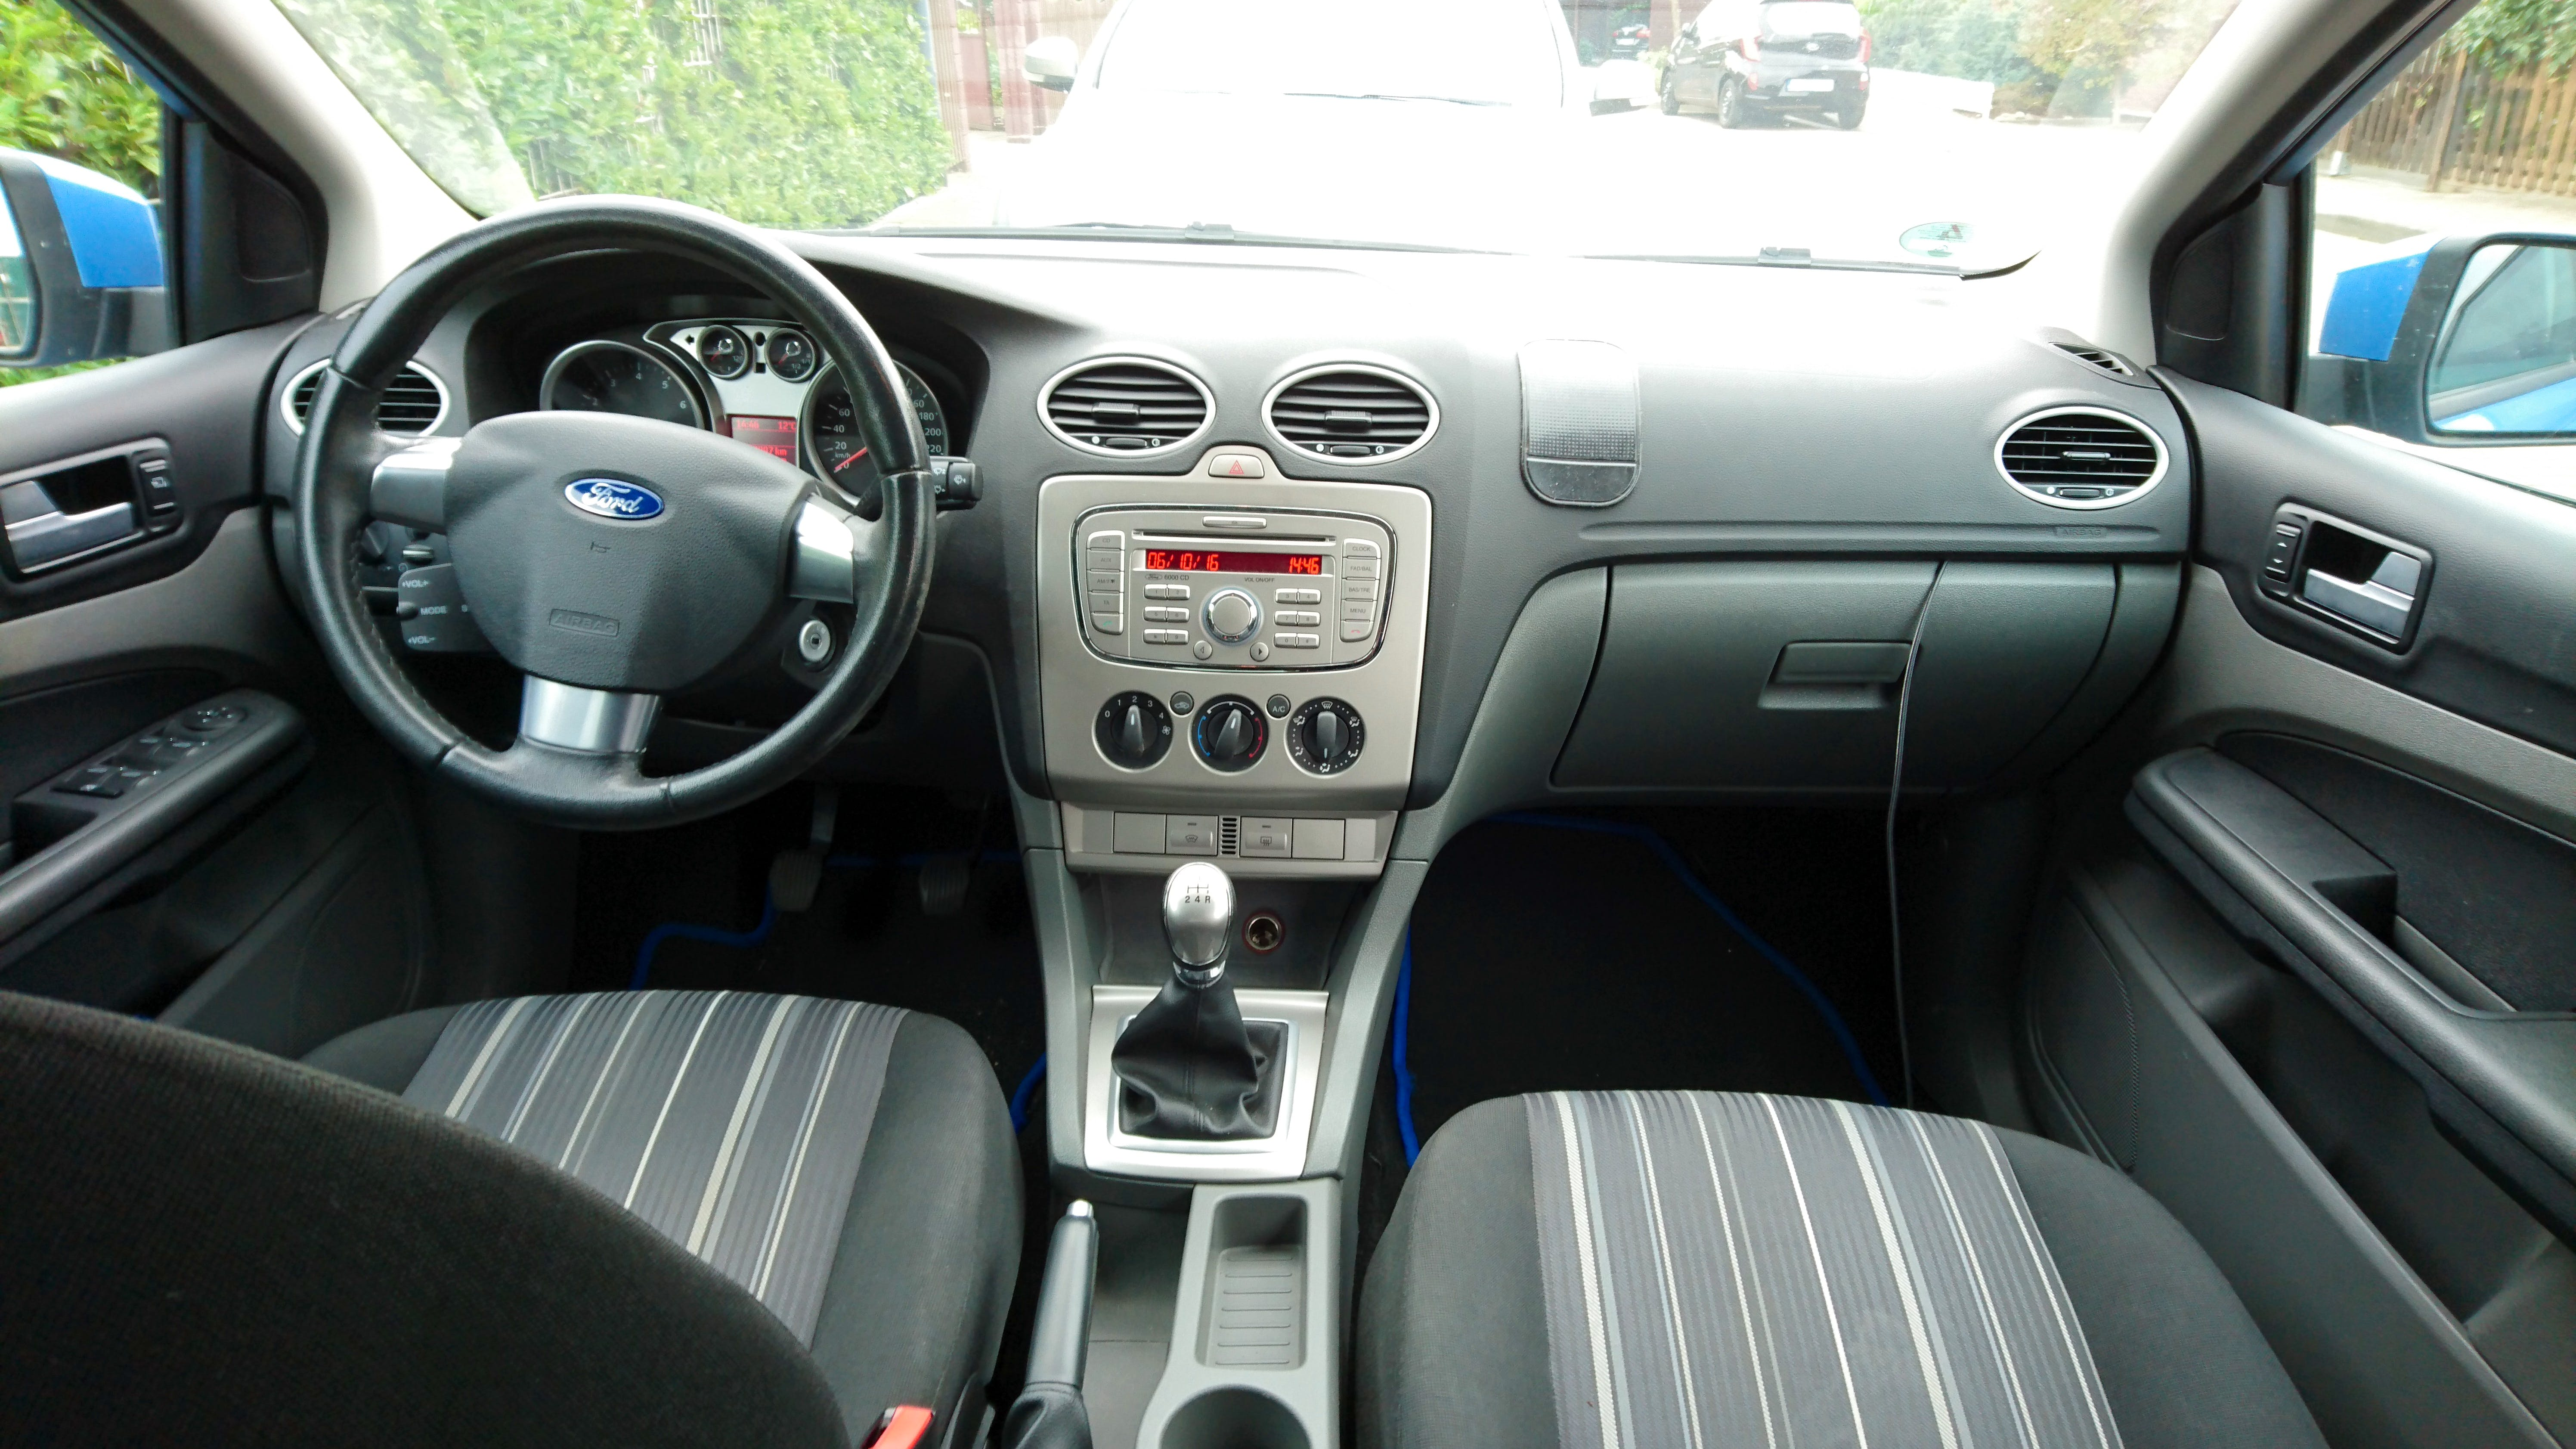 Ford Focus II (Facelift) mit Audio-/iPod-Zugang